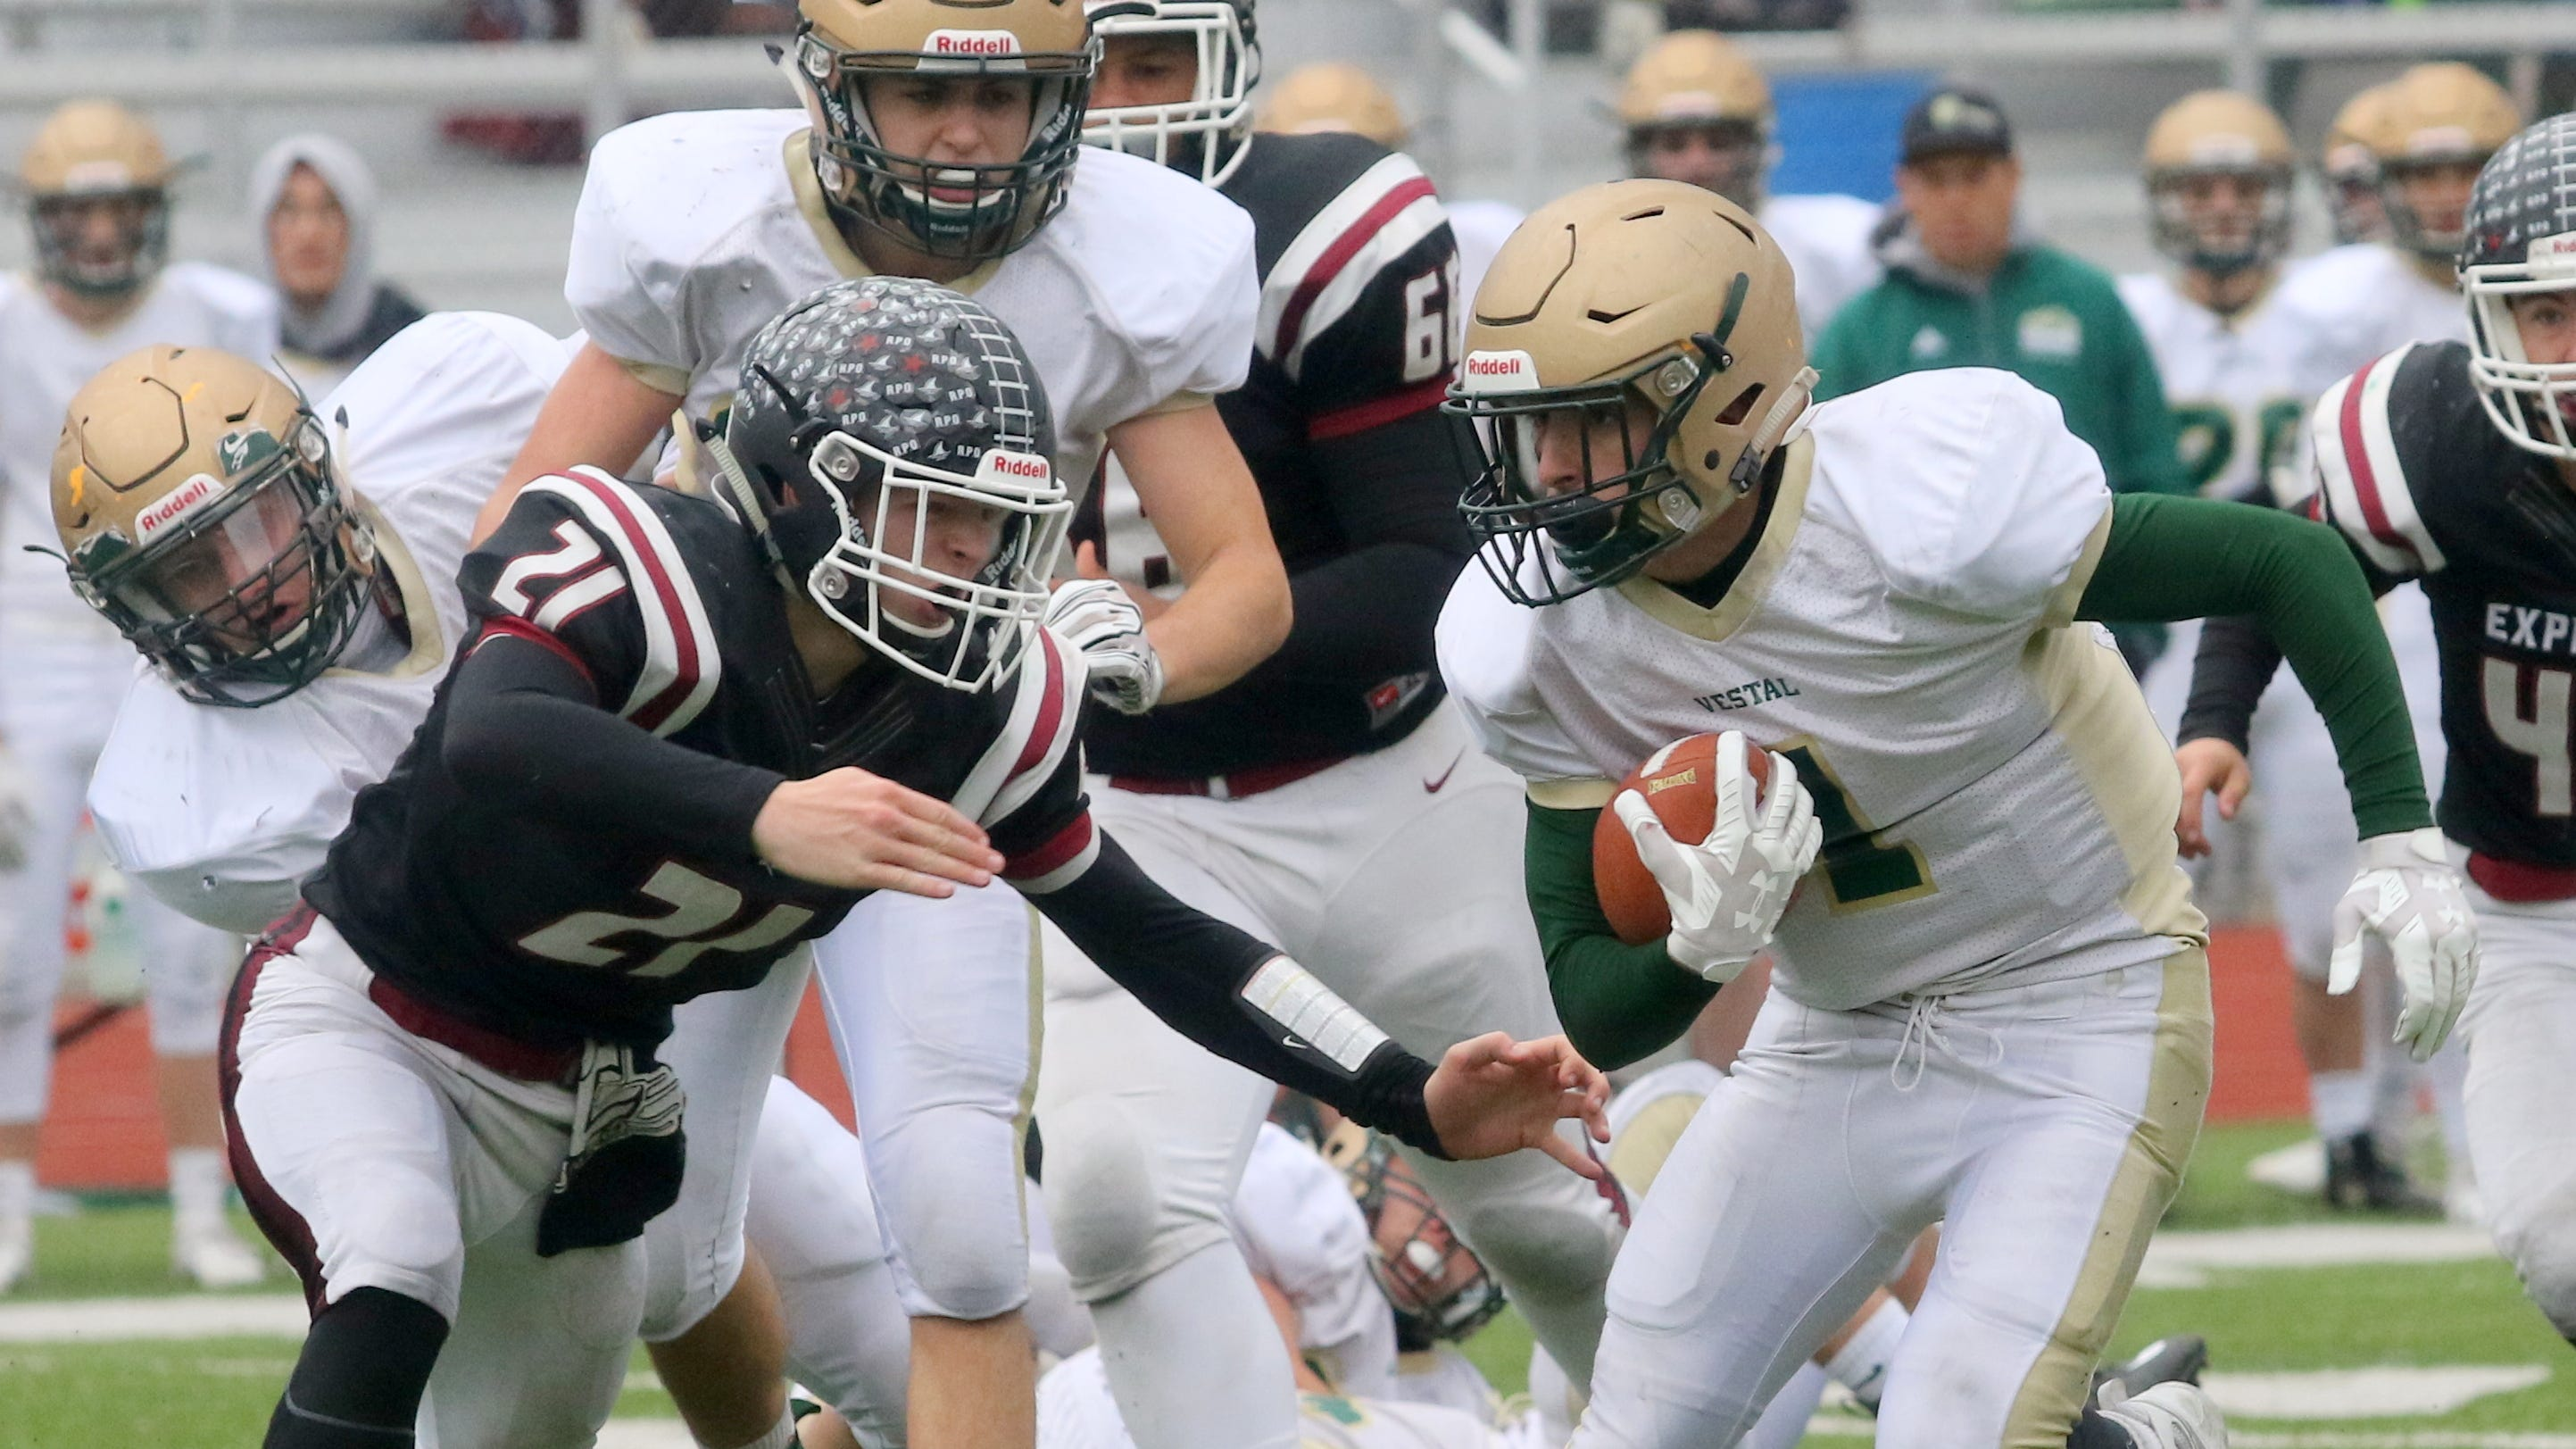 Matt Thrasher of Vestal carries the ball as Nate Latshaw of Elmira tries to make the tackle during the Golden Bears' 30-28 win Oct. 20, 2018 at Ernie Davis Academy.